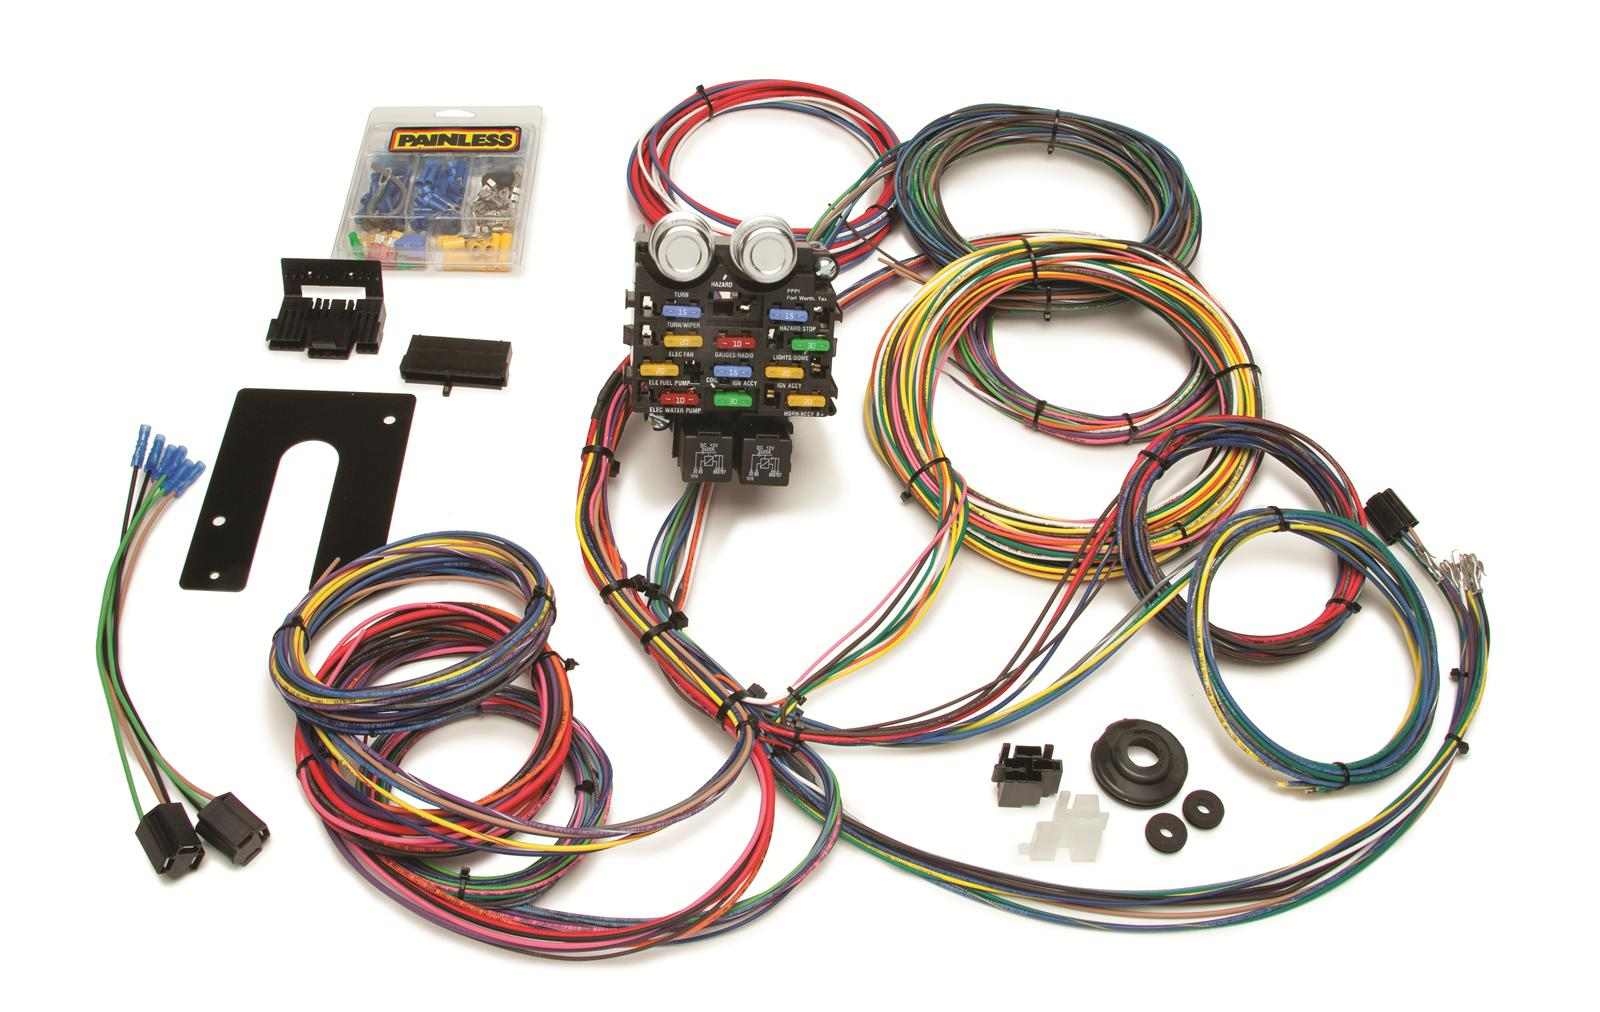 painless performance 21-circuit pro street chassis harnesses 50002 - free  shipping on orders over